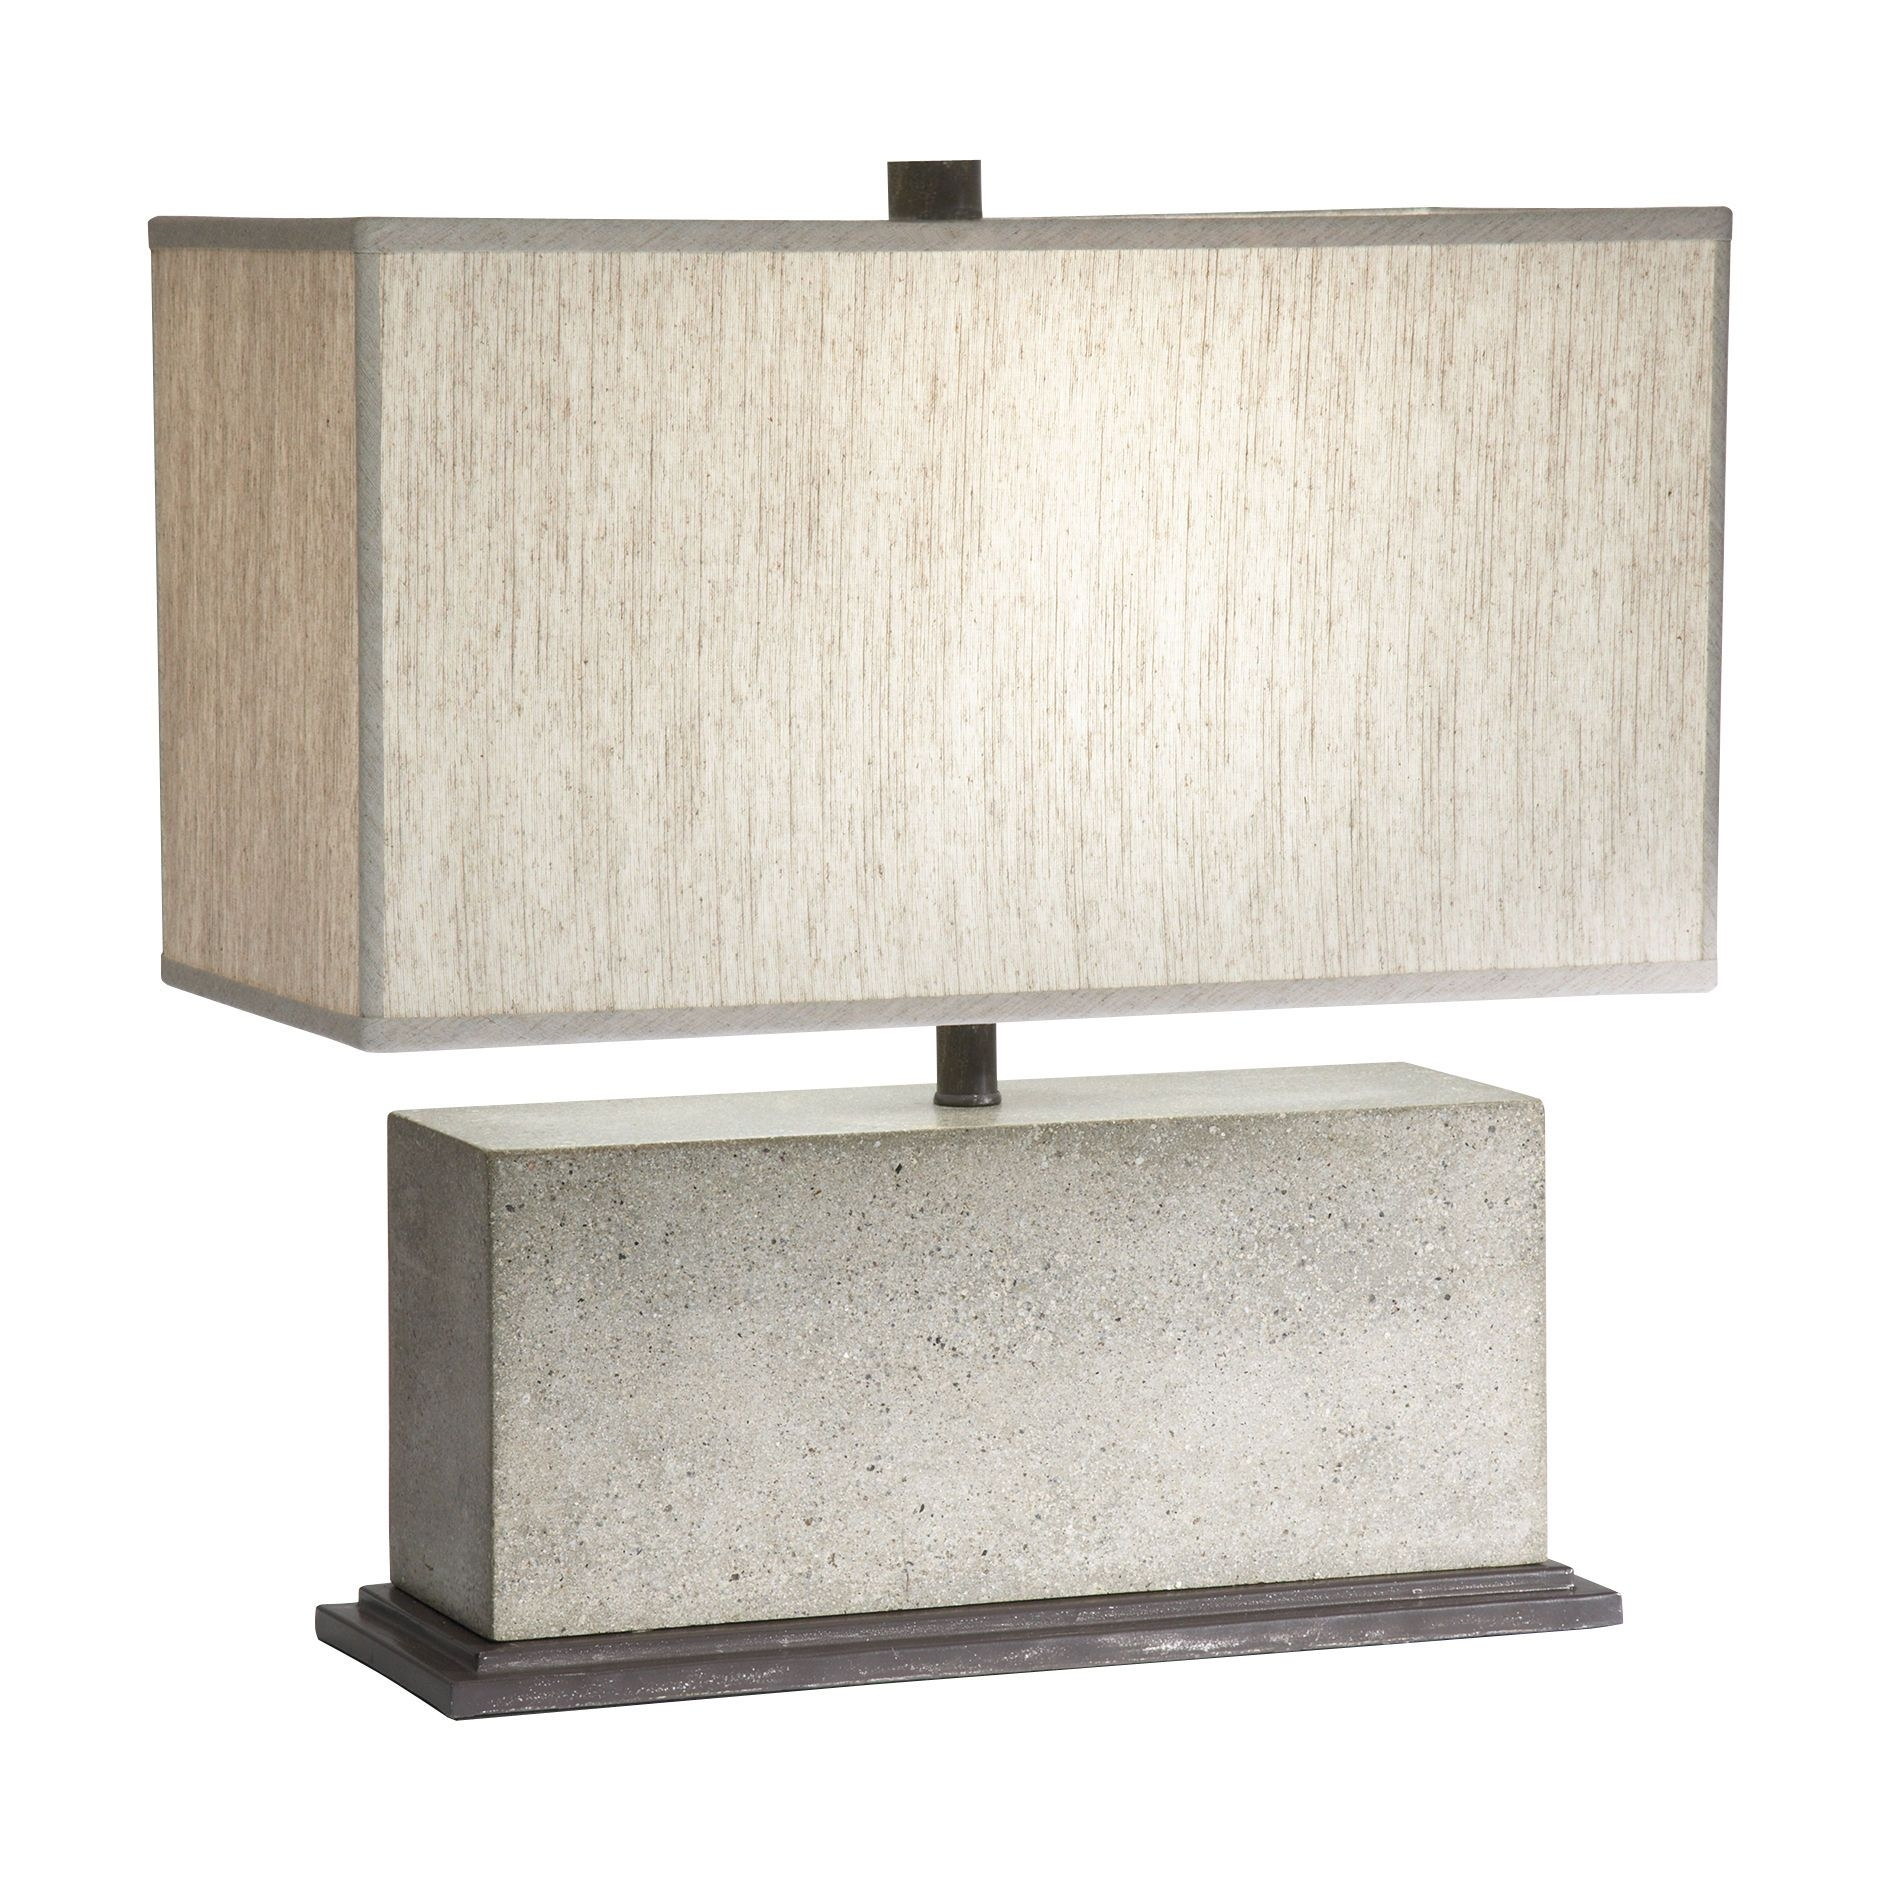 Rectangular Shade Floor Lamp 1